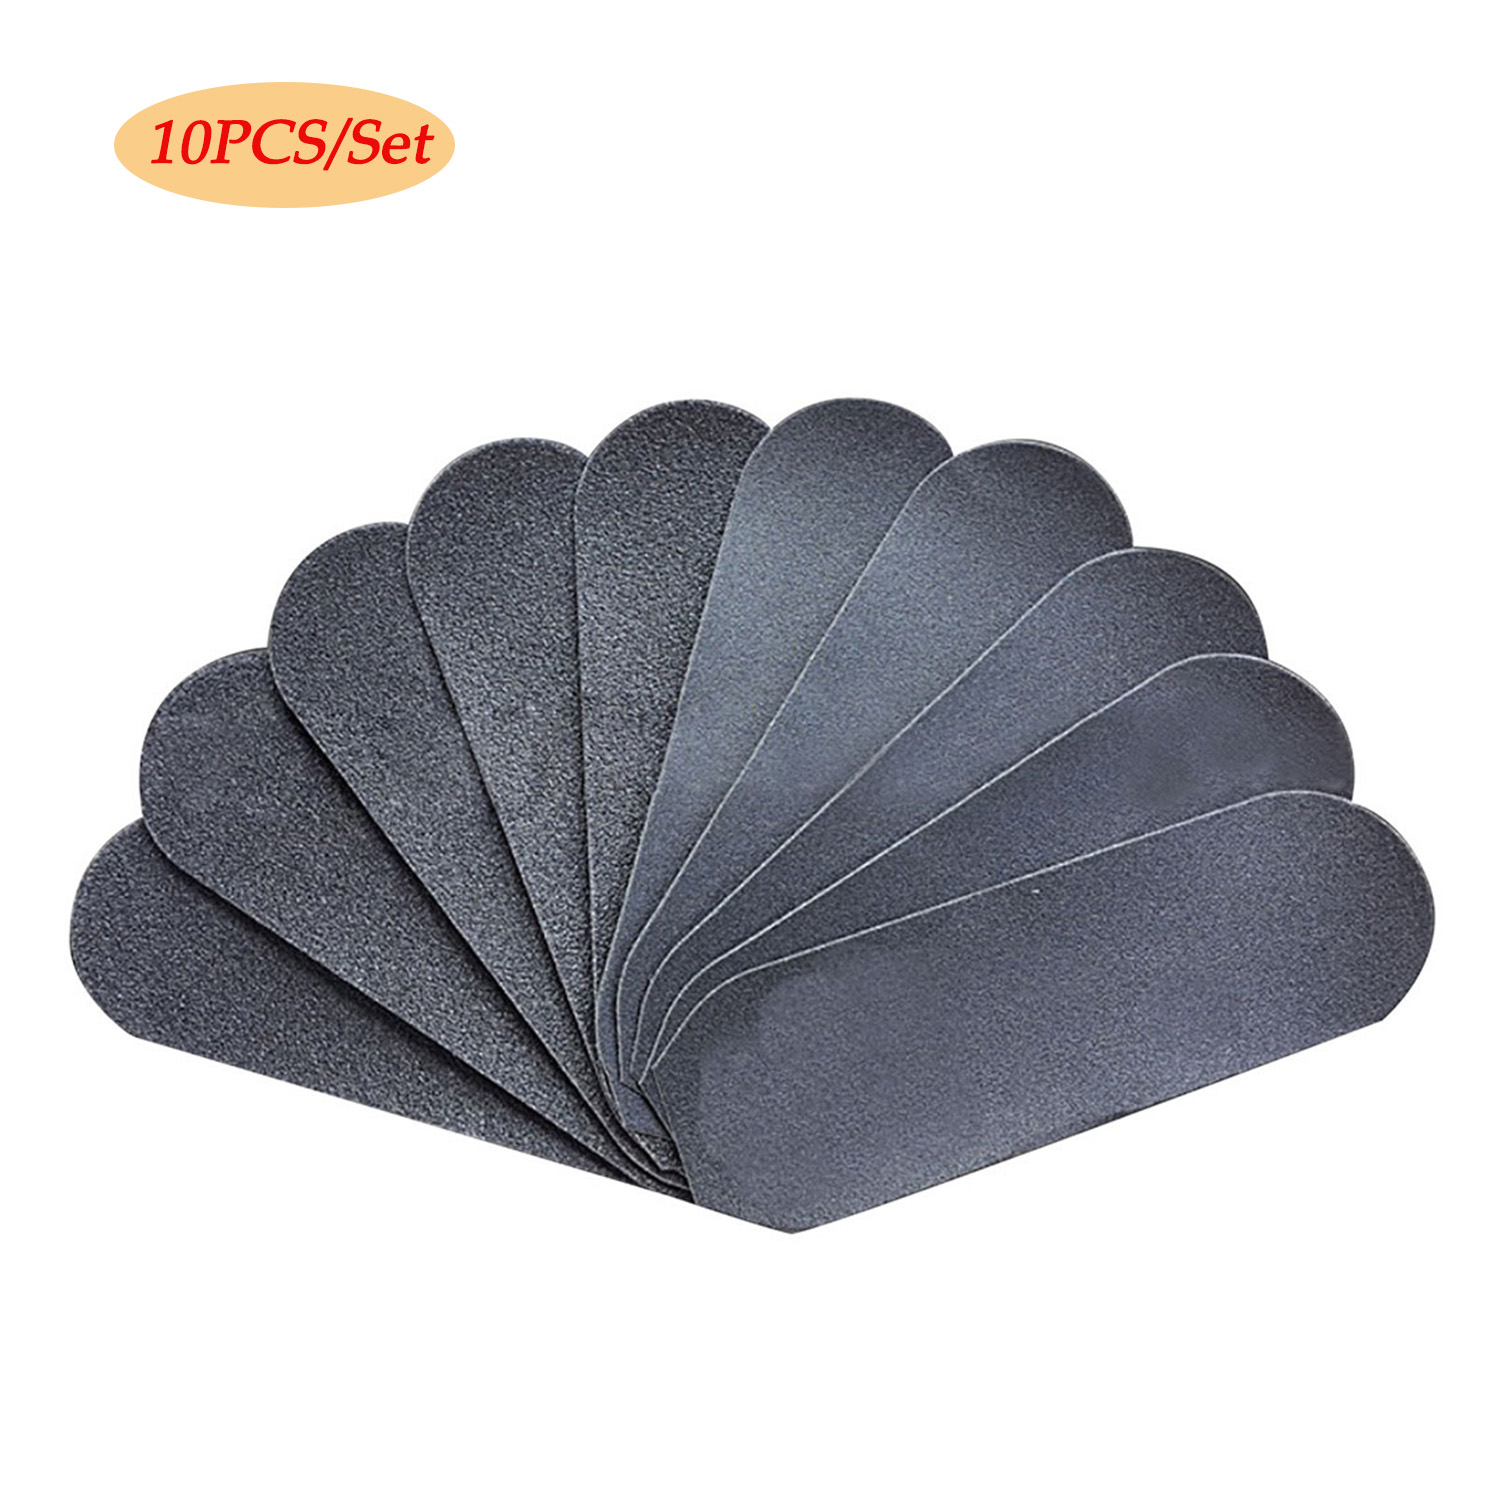 10pcs Sand Paper Replacement Grits Pad For Stainless Steel Double Sided Foot Rasp File Calluses Remover Pedicure Foot Care Tool